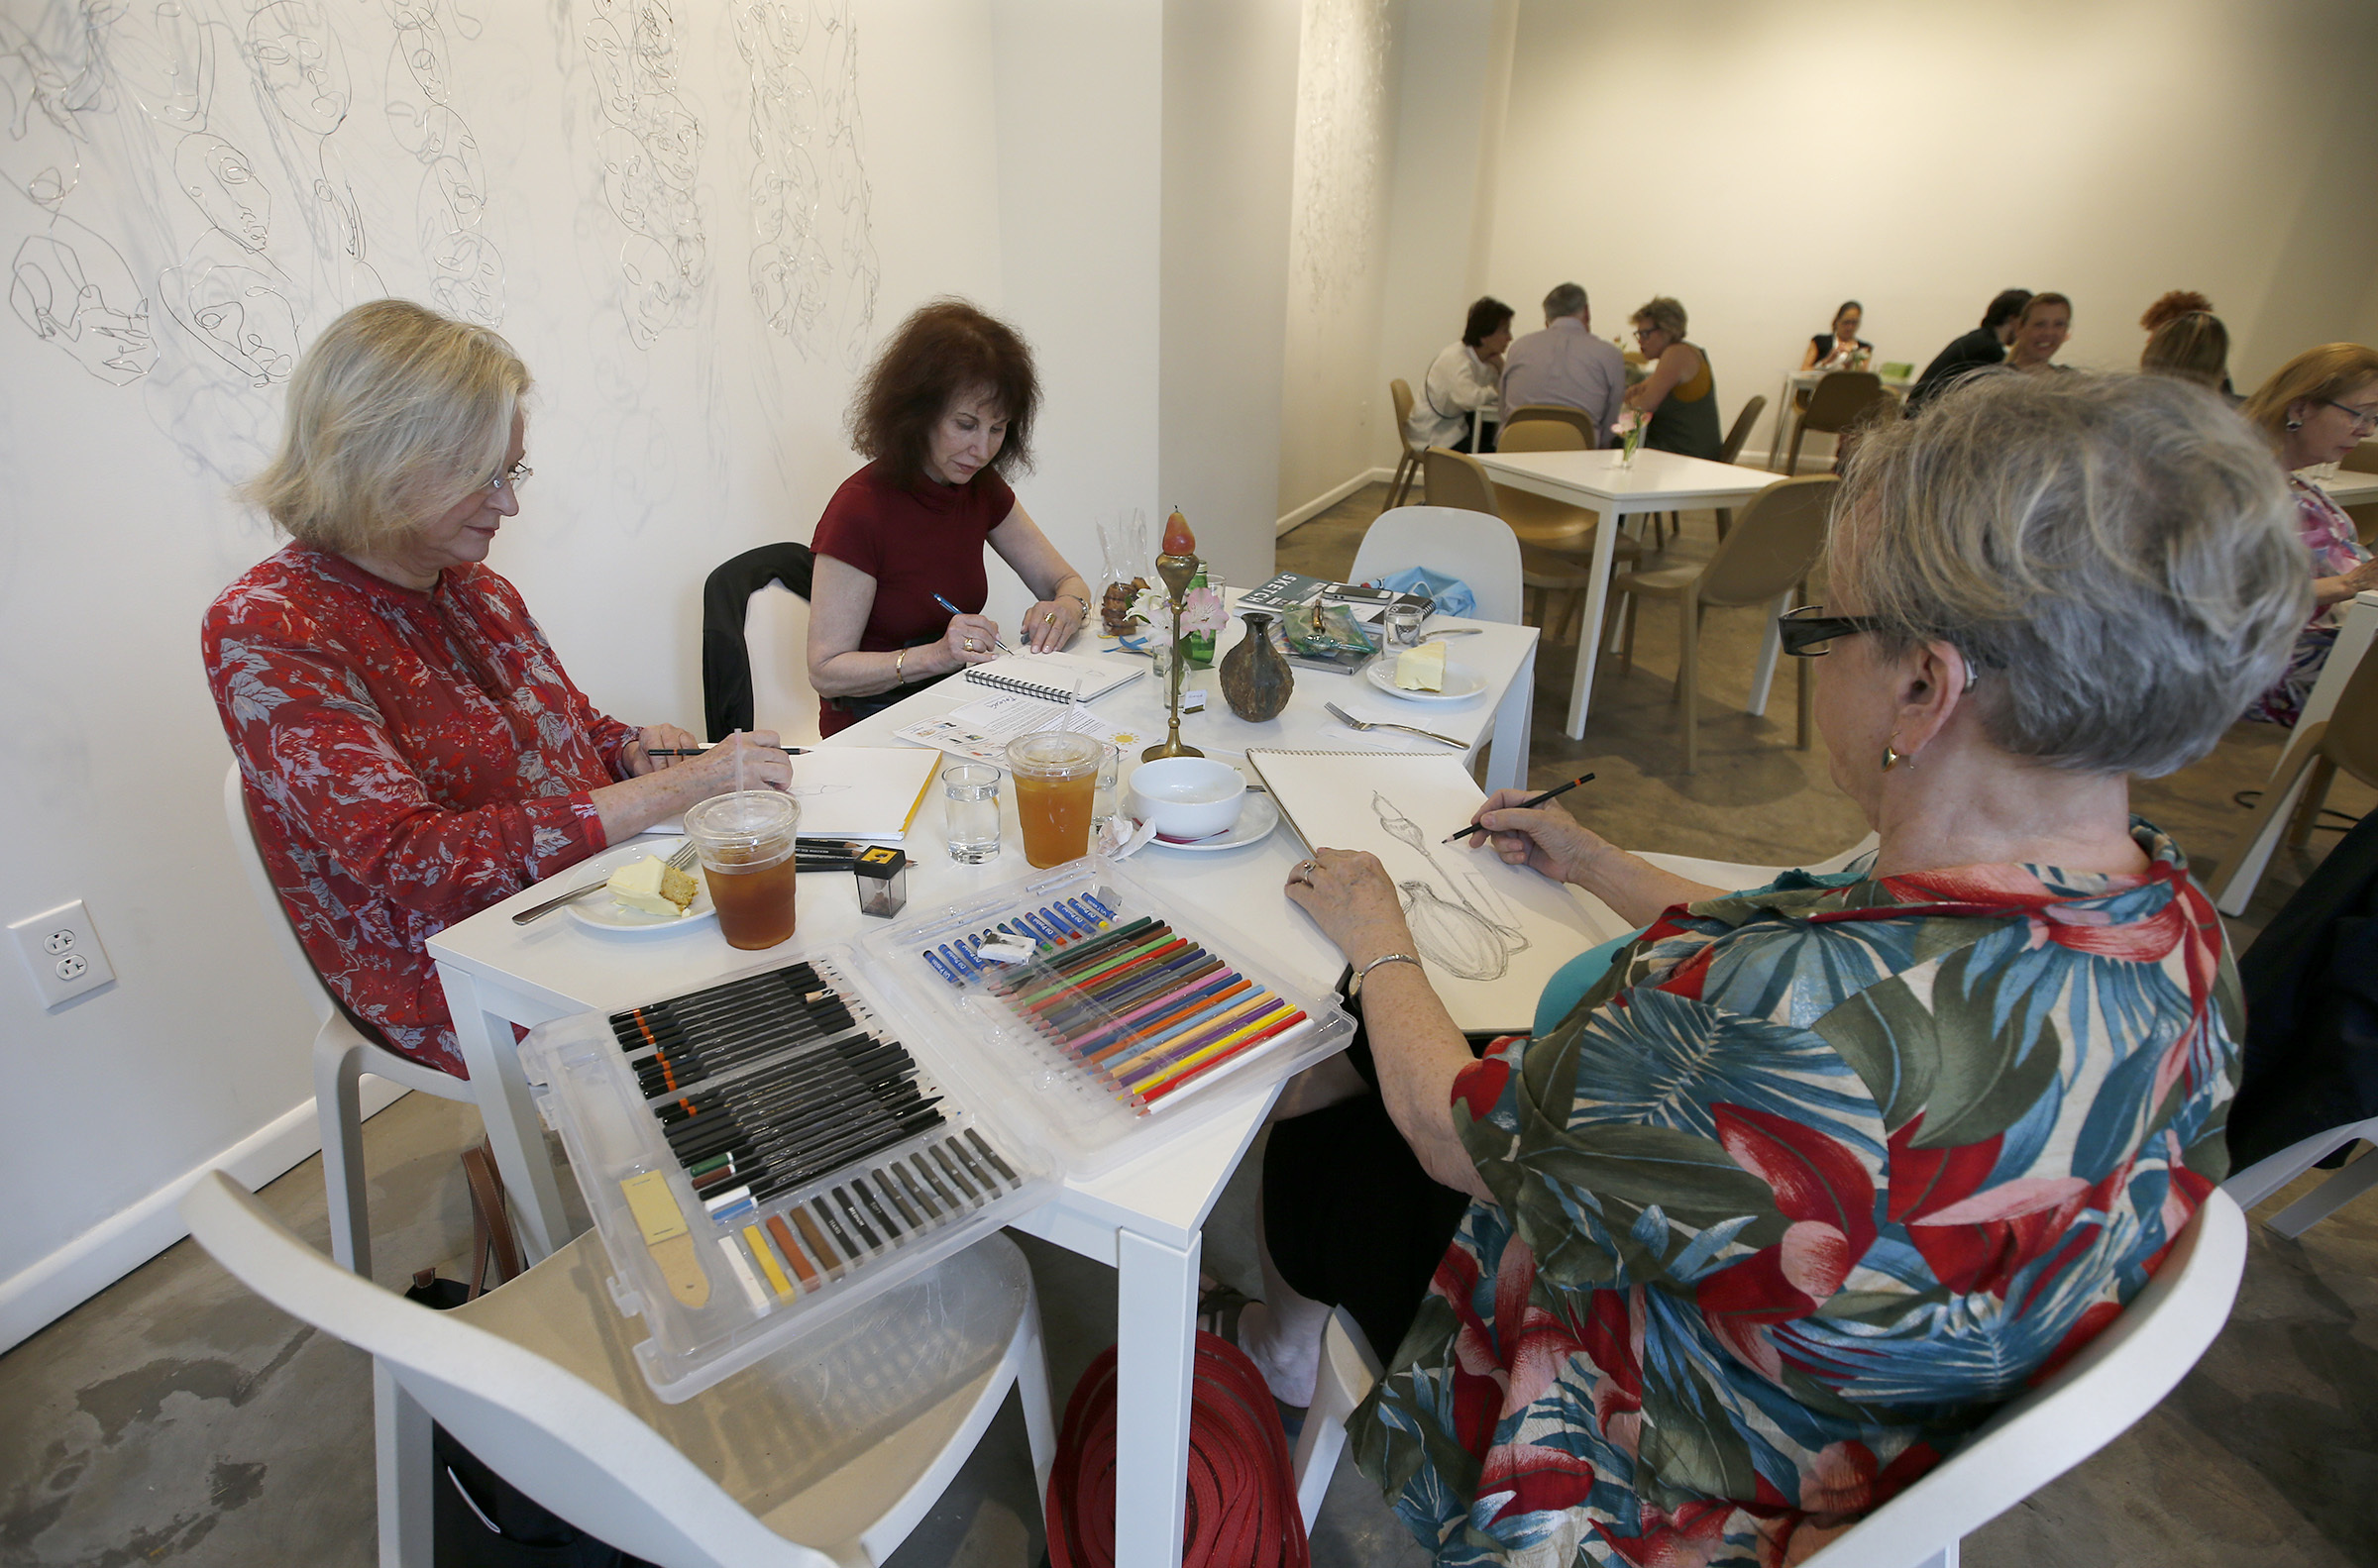 From Left to right: Gay Walling, Ruth Miller and Carole Mablekos sketch and snack at FRIEDA on the 300 block of Walnut Street on Thursday, May 18, 2017. YONG KIM / Staff Photographer